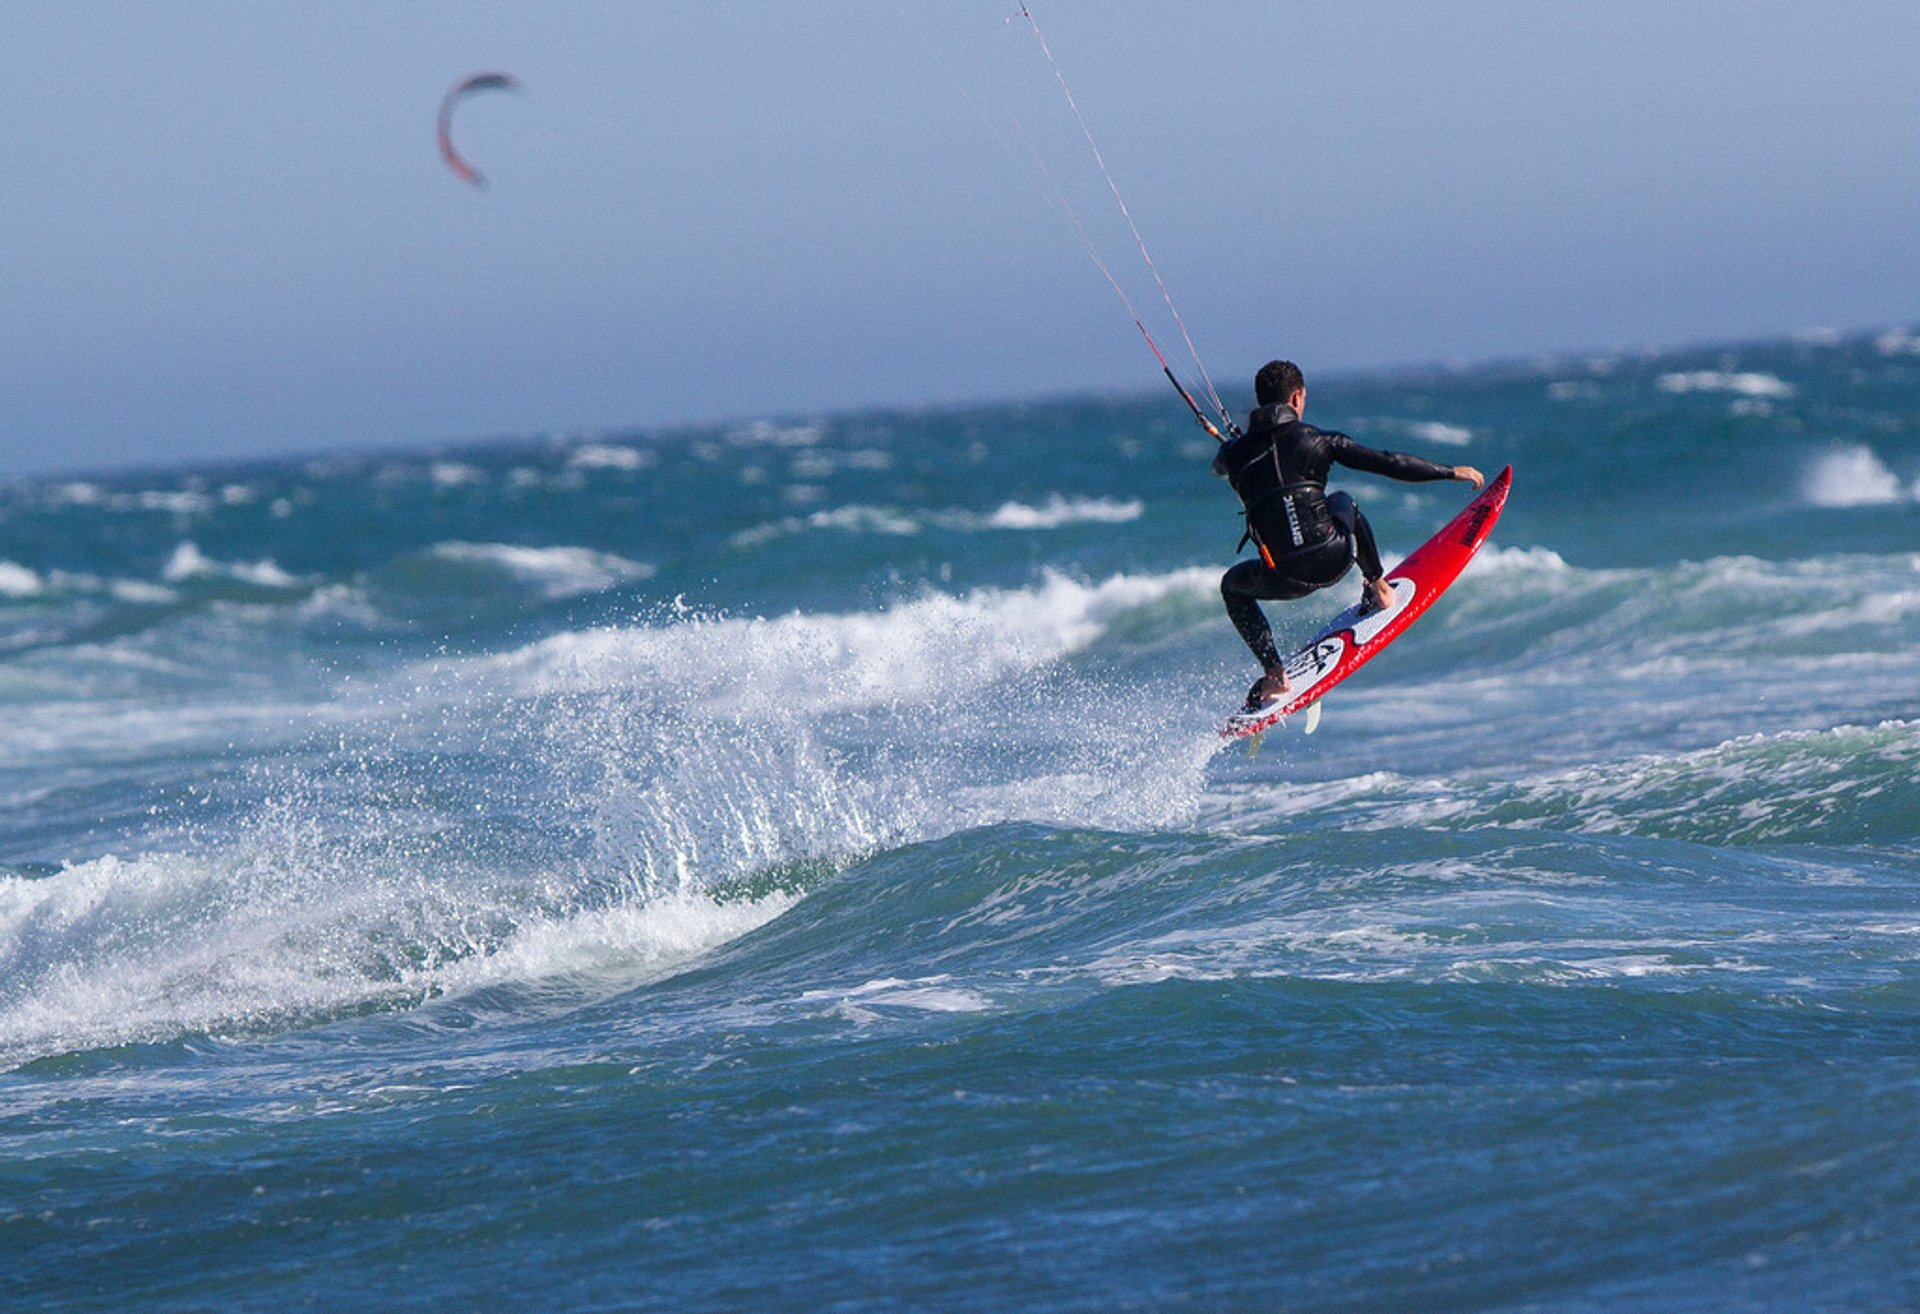 Kiteboarder at Waddell Creek 2020